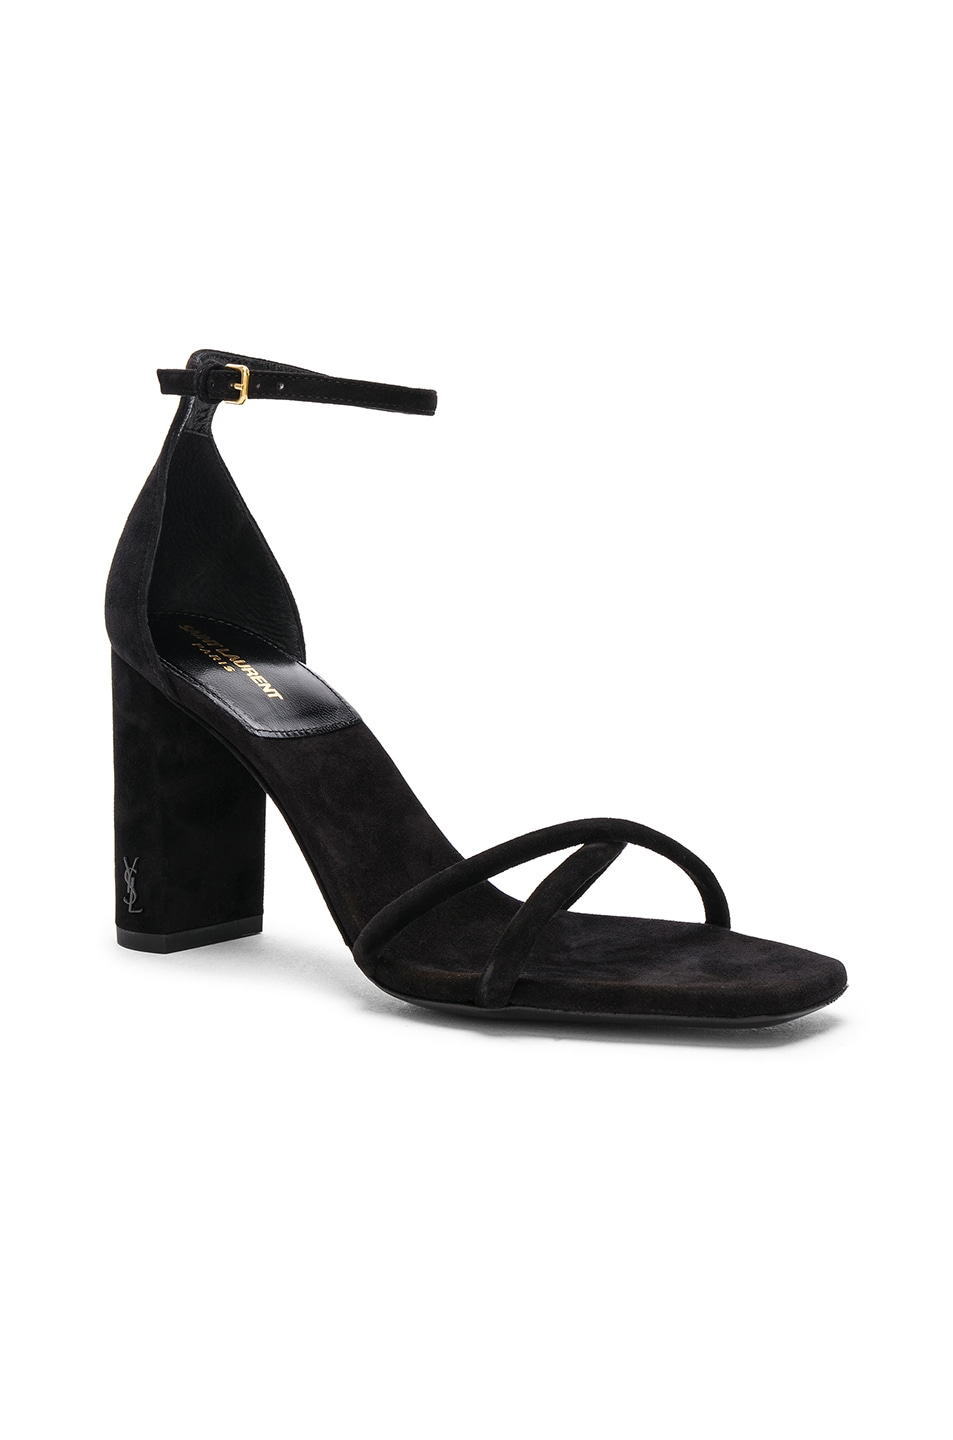 Image 2 of Saint Laurent Suede Pin Loulou Ankle Strap Sandals in Black